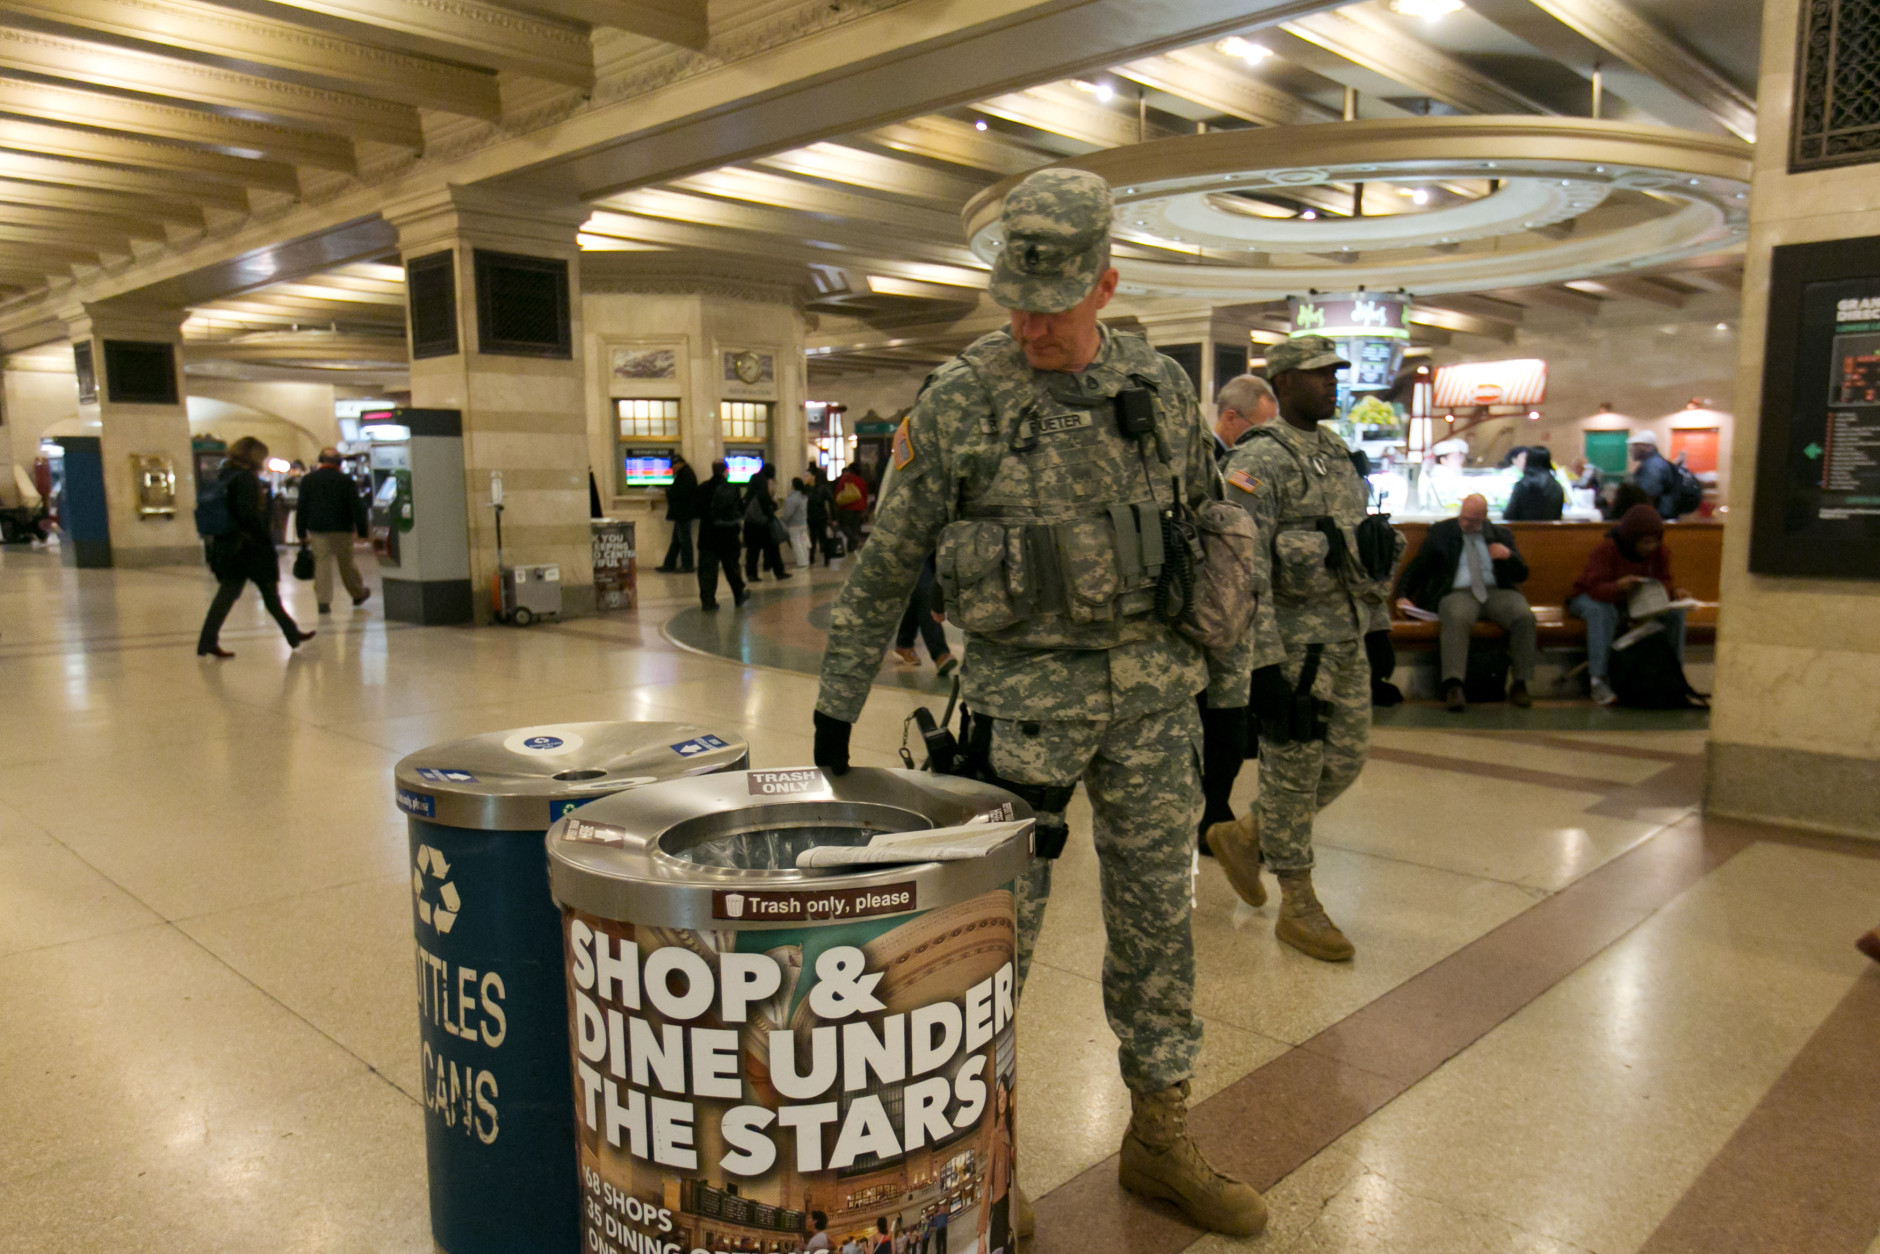 New York Army National Guard Staff Sgt. Rueter, foreground, of Joint Task Force Empire Shield, patrols the lower concourse of Grand Central Terminal, in New York,  Tuesday, March 22, 2016. Authorities are increasing security throughout New York City following explosions at the airport and subway system in the Belgian capital of Brussels.  (AP Photo/Richard Drew)